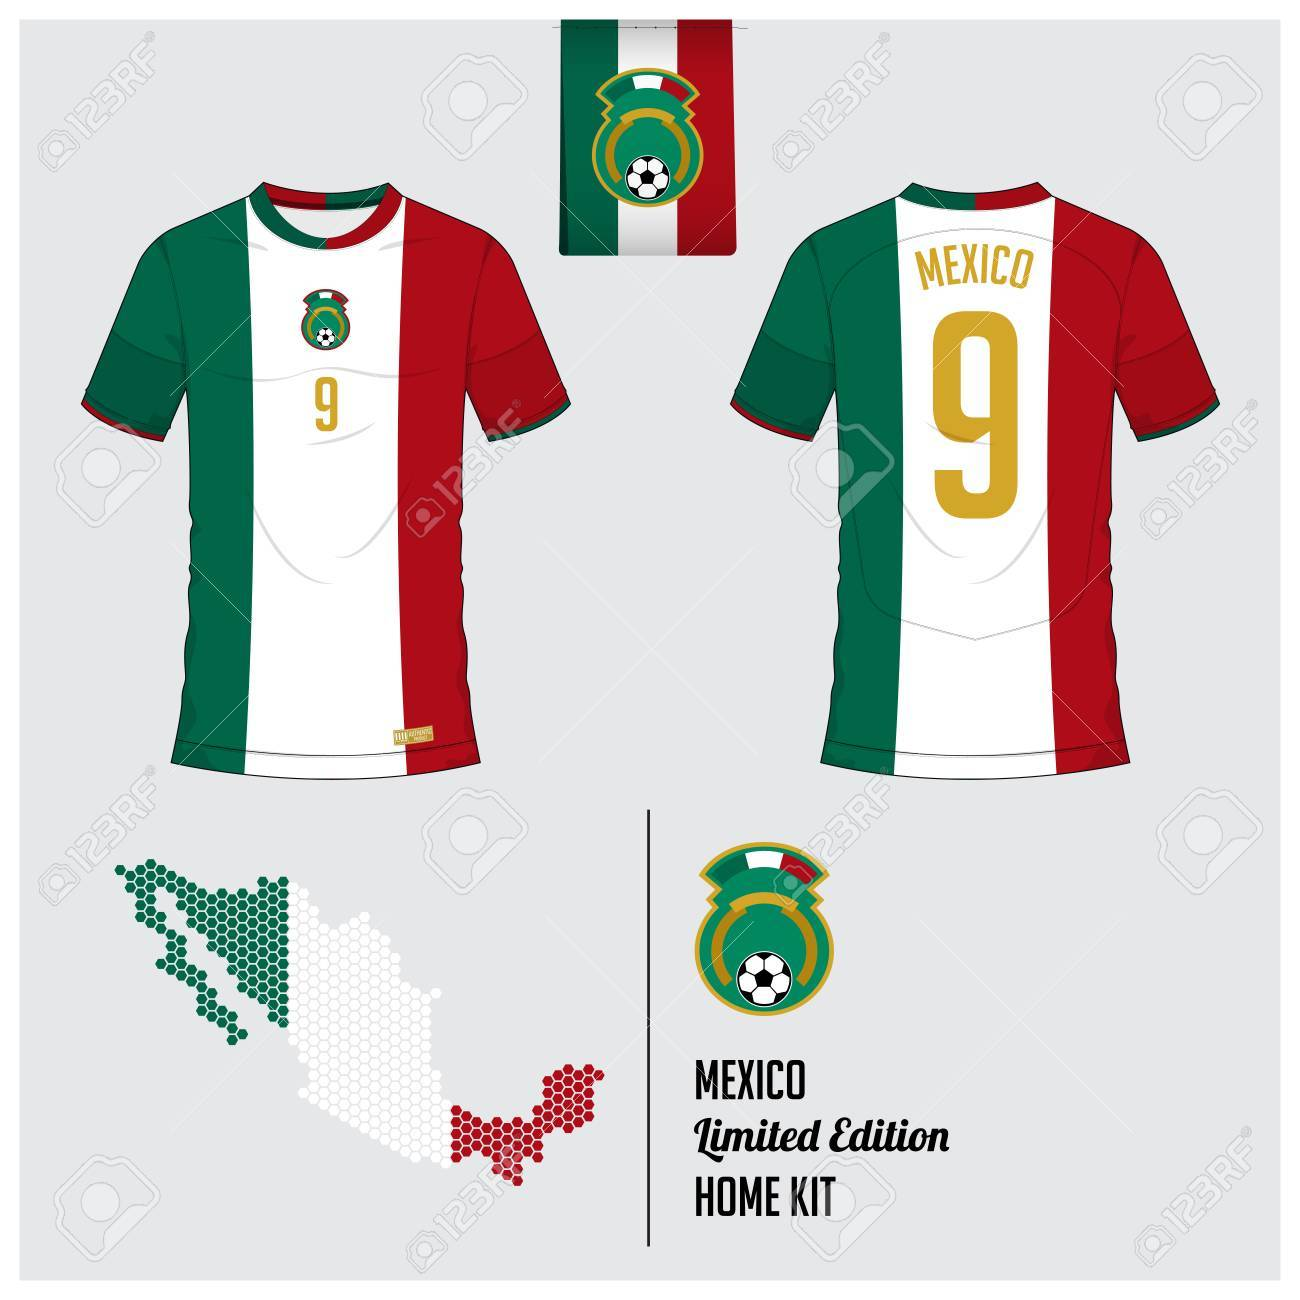 timeless design c60f0 59fef Soccer jersey or football kit, template for Mexico National Football..